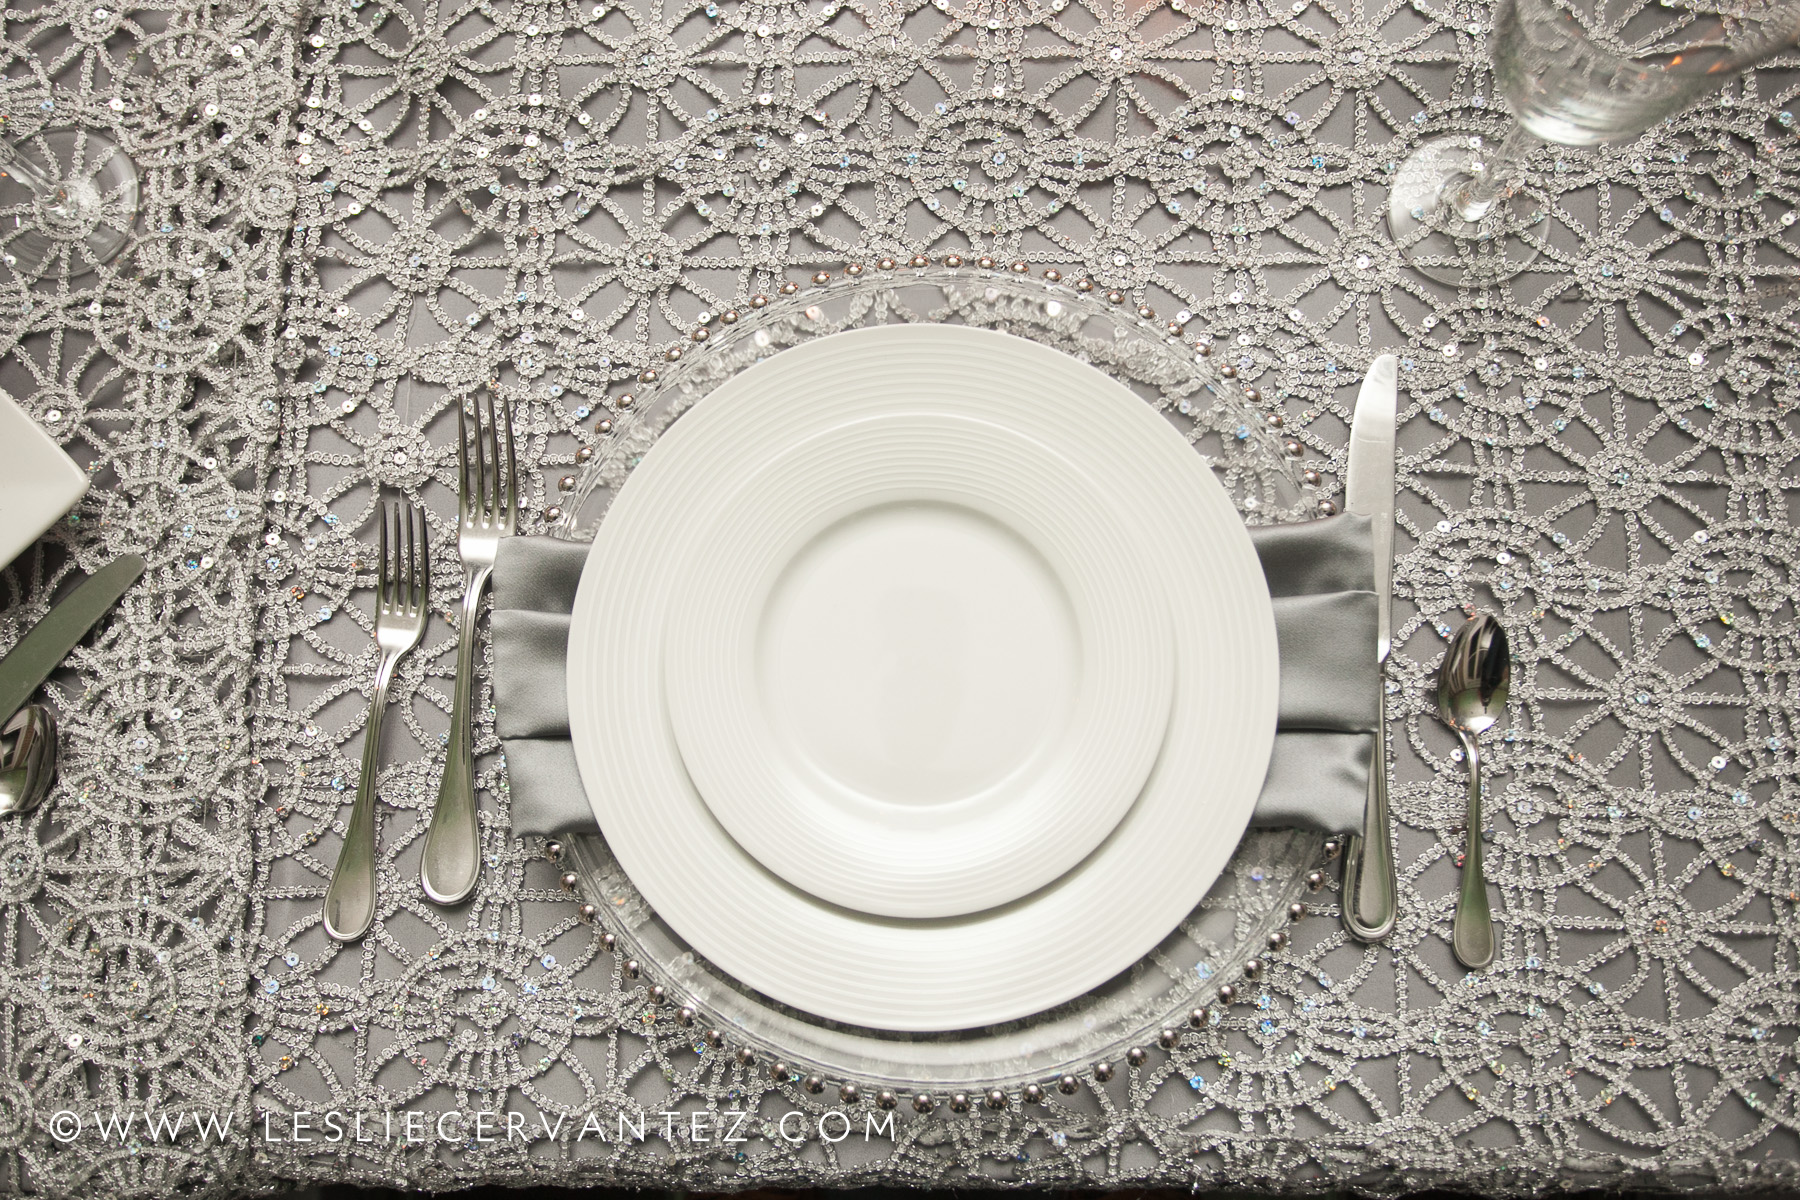 All place settings provided by A Finer Event